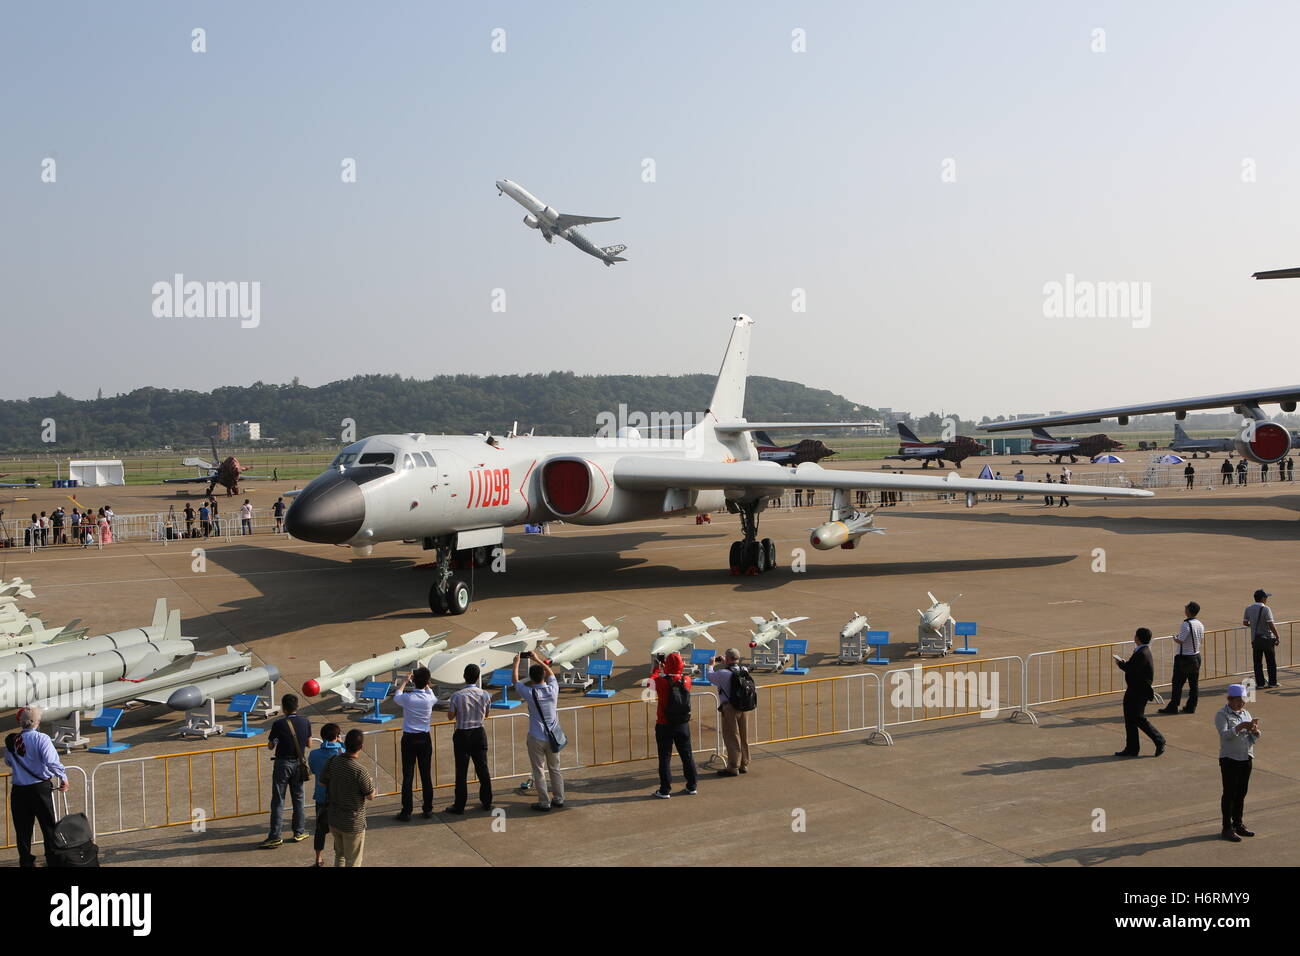 Zhuhai, China. 1st Nov, 2016. A Xian H-6K, a Chinese license-built version of the Soviet Tupolev Tu-16 bomber, on - Stock Image